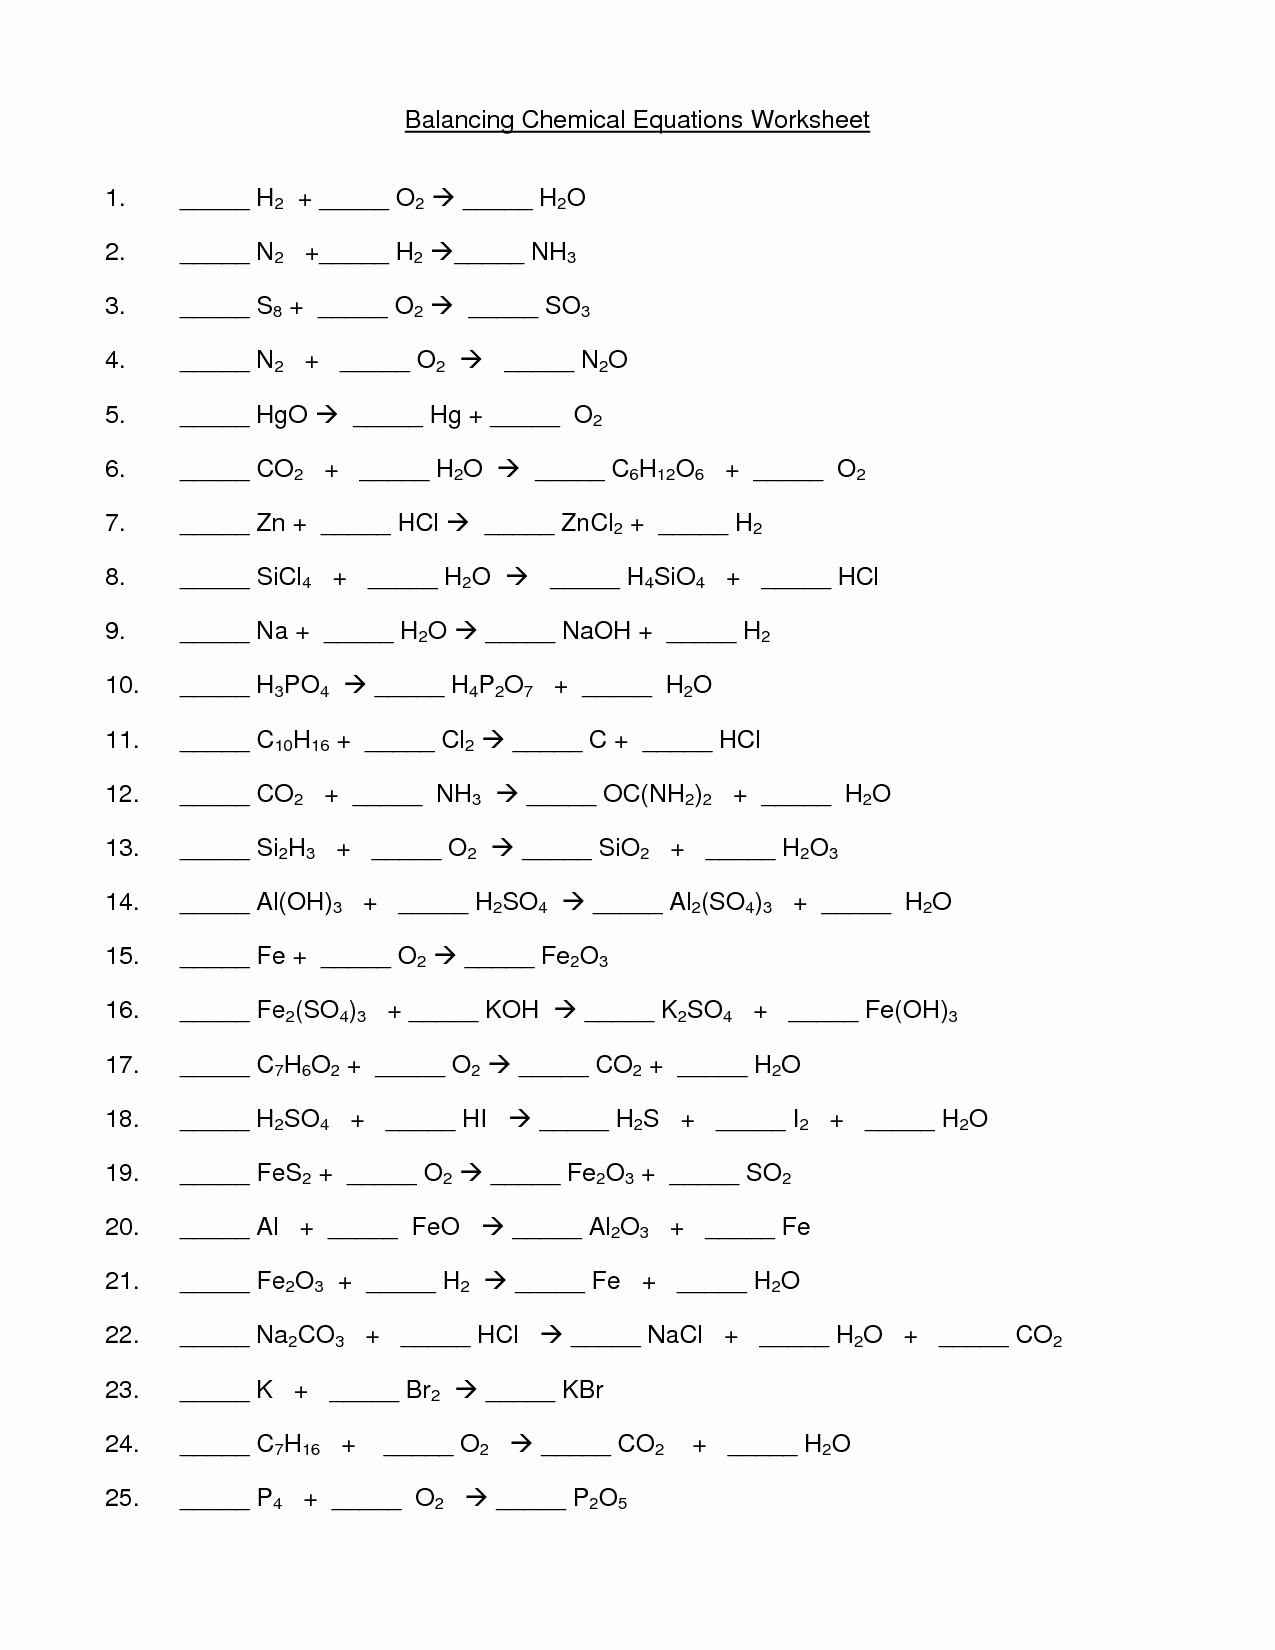 Balancing Chemical Equations Worksheet 1 Unique Balancing Equations Worksheet Workout Sheet